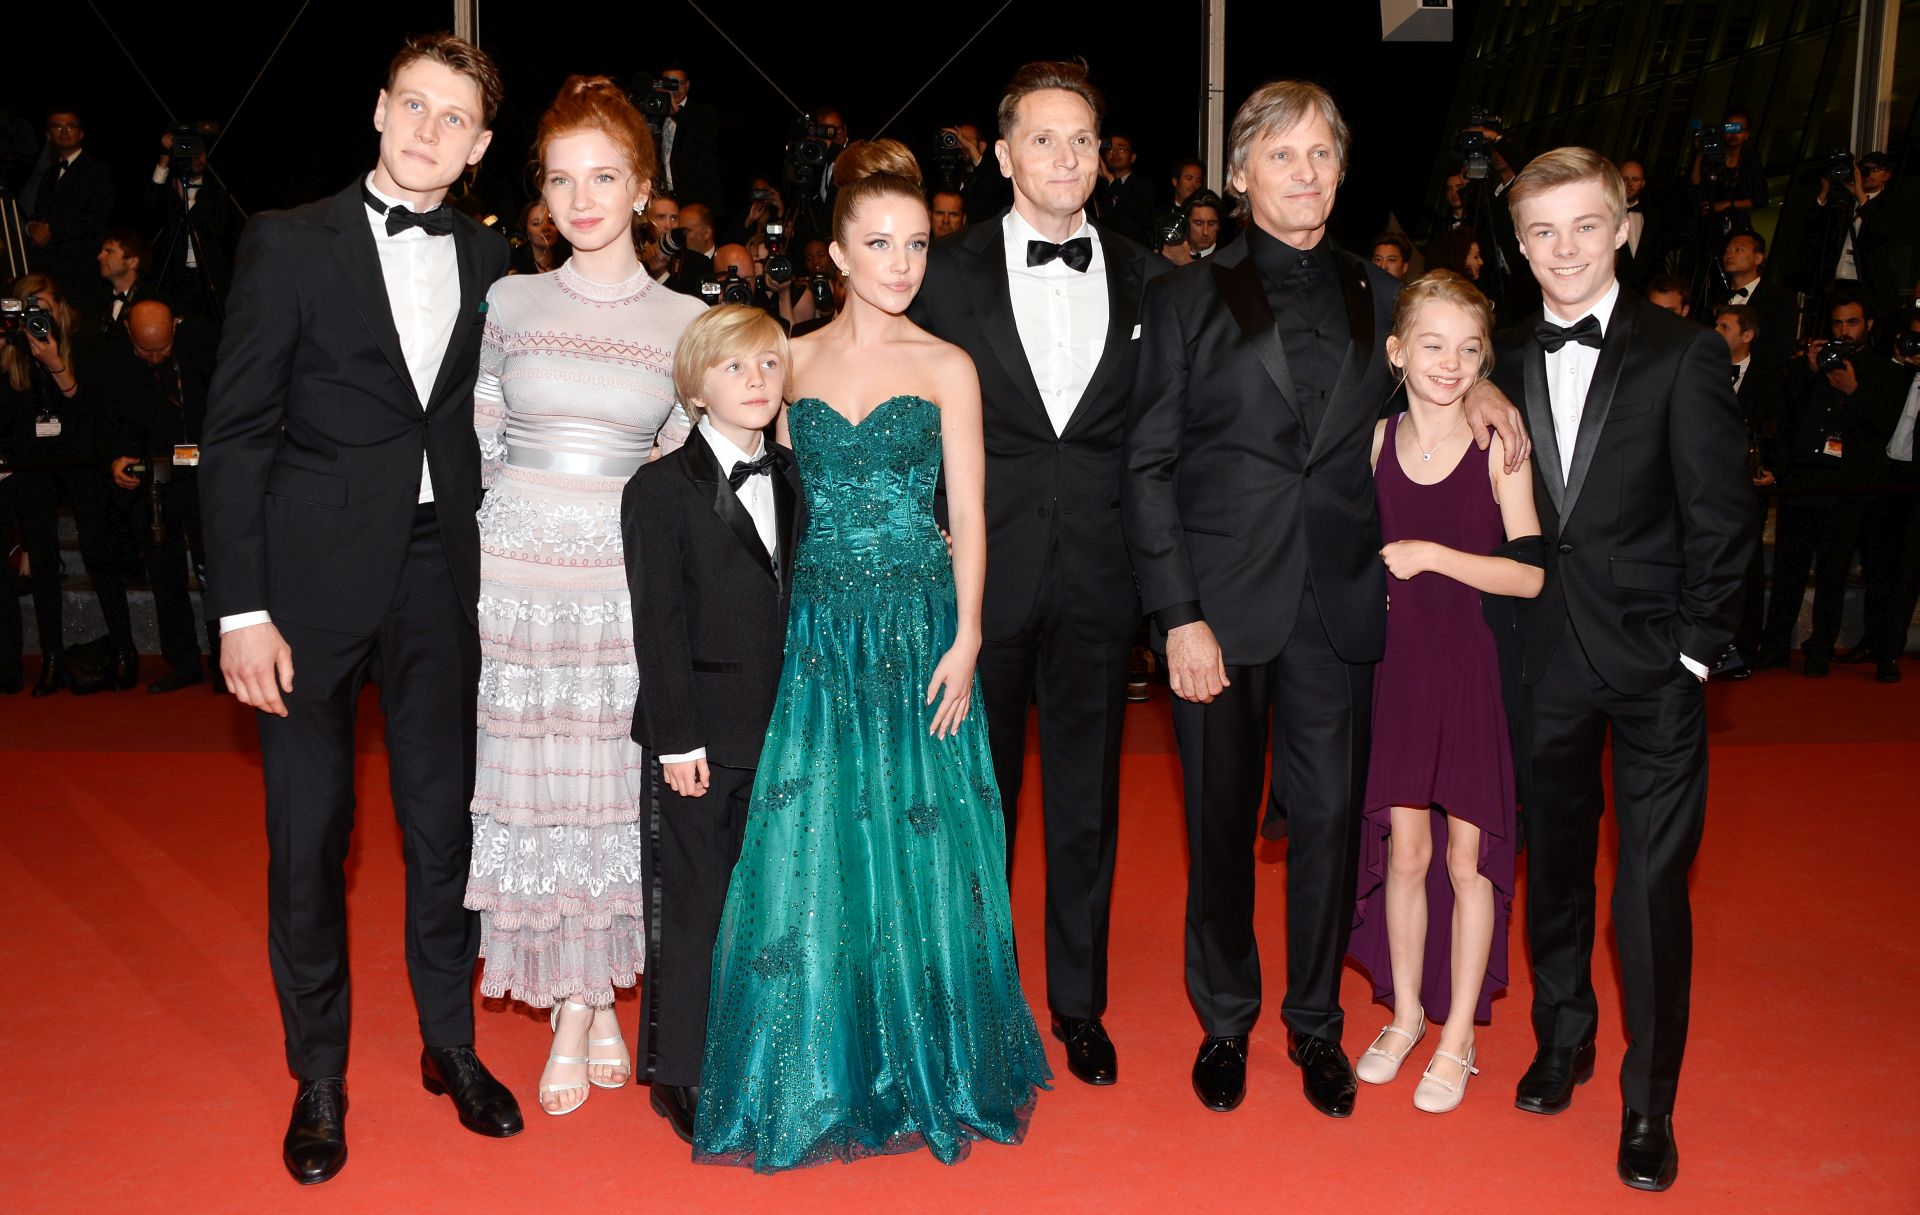 George MacKay, Annalise Basso, Charlie Shotwell, Samantha Isler, director Matt Ross, Viggo Mortensen, Shree Crooks i Nicholas Hamilton (Photo by Pascal Le Segretain/Getty Images)